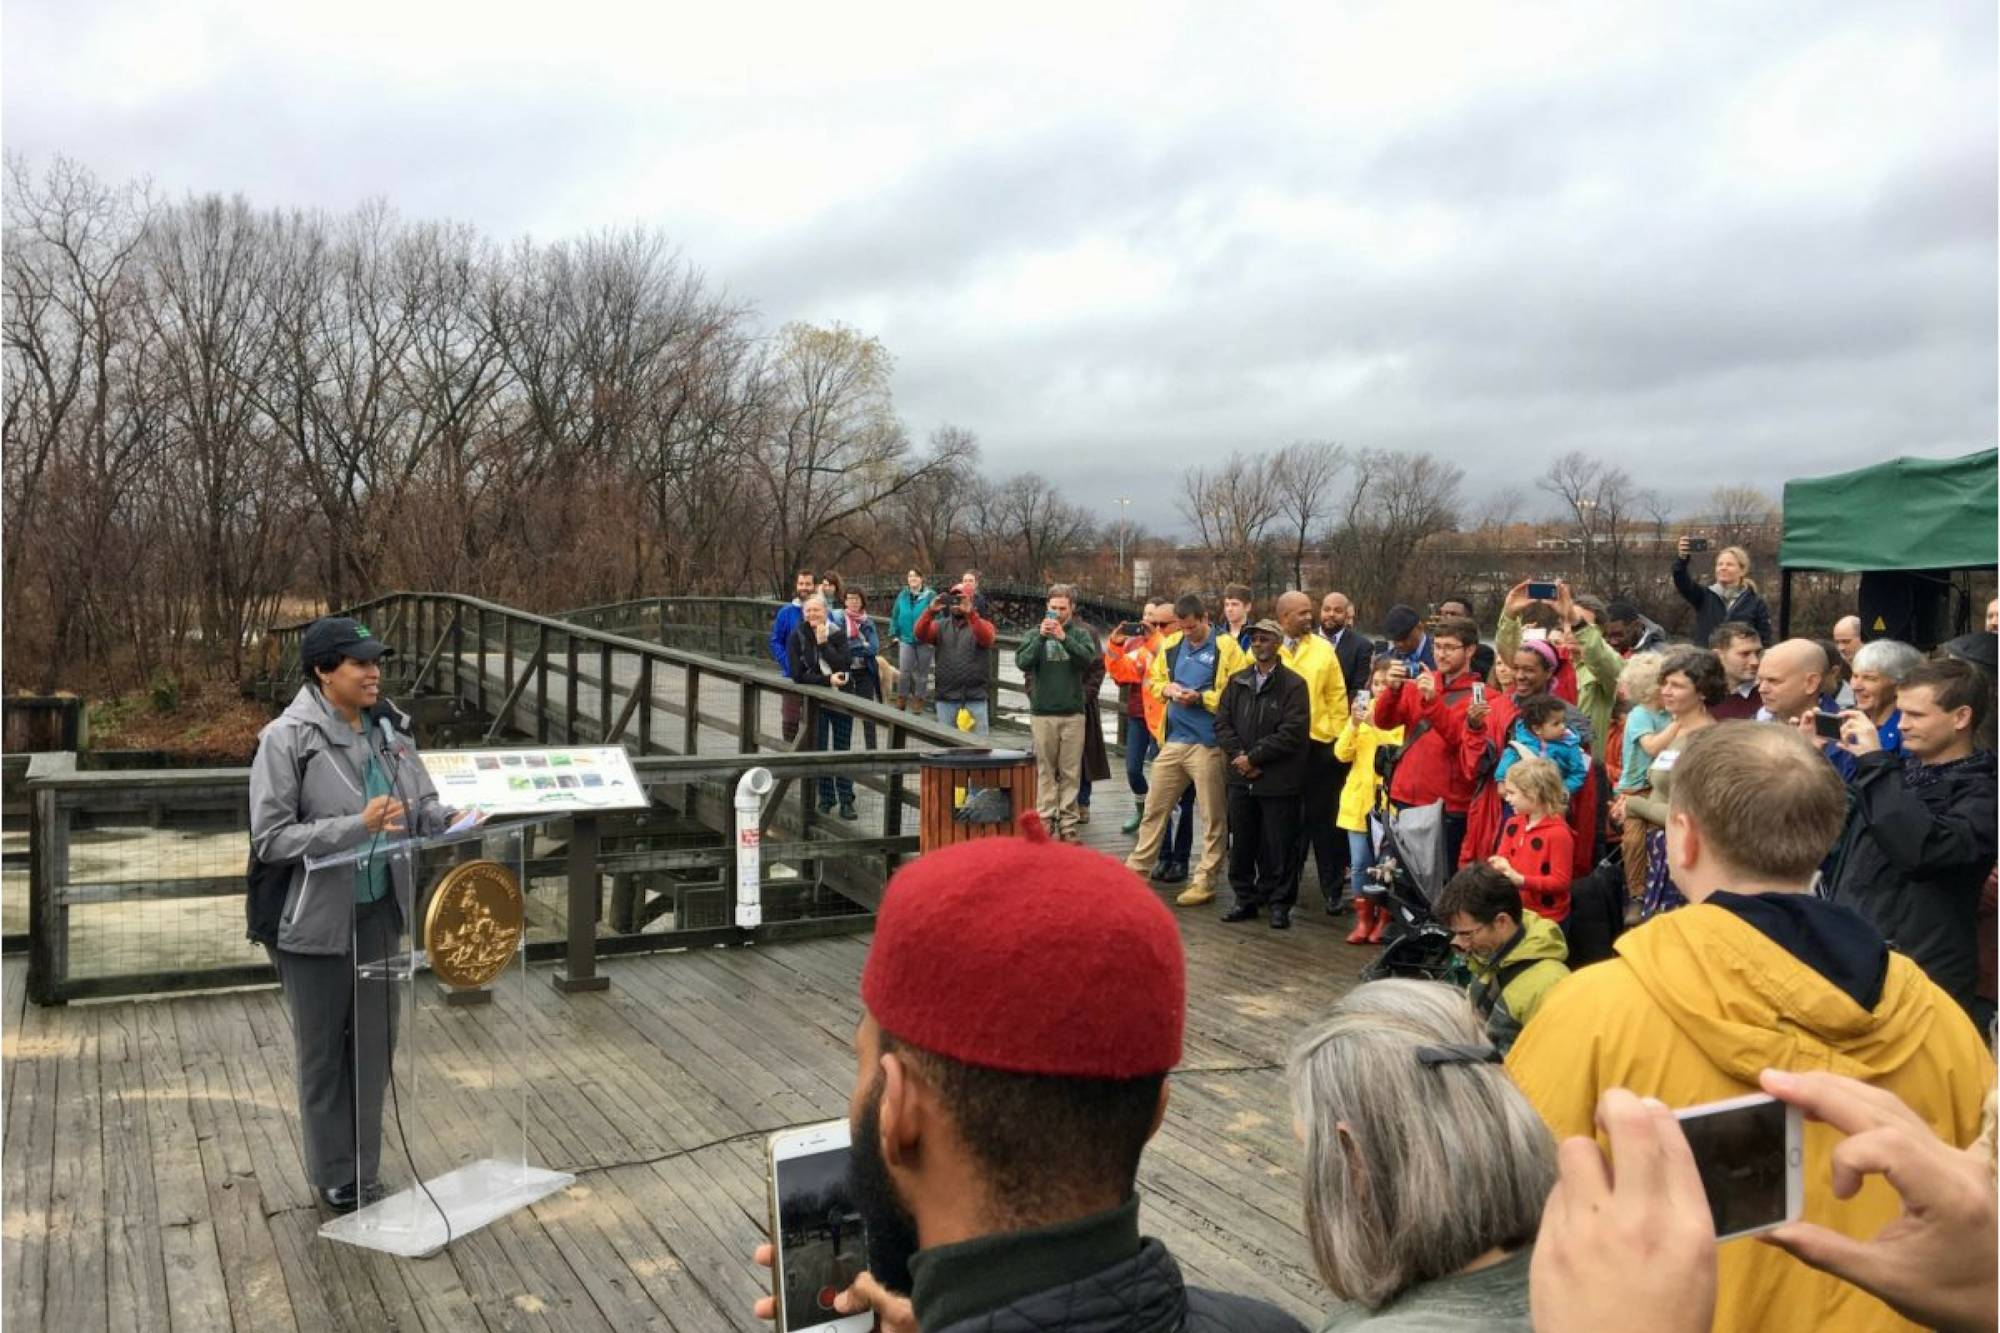 Anacostia Watershed Society Applauds Mayor Bowser's Investment in Kingman Island